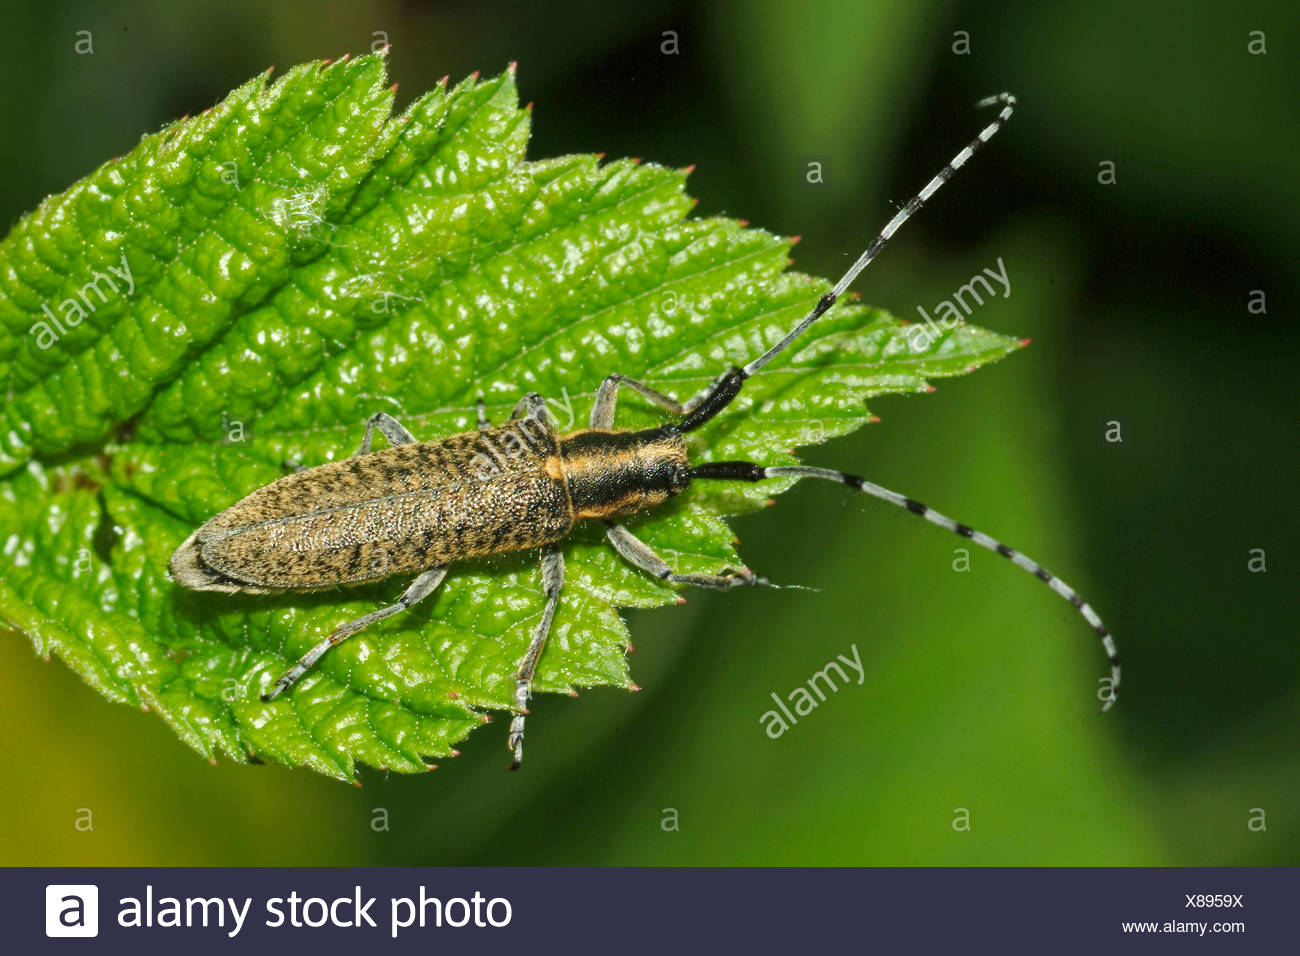 Thistle longhorn beetle, Flat-faces longhorn, Thistle longhorn beetle, Golden-bloomed Grey Longhorn (Agapanthia villosoviridescens), on a leaf, Germany - Stock Image